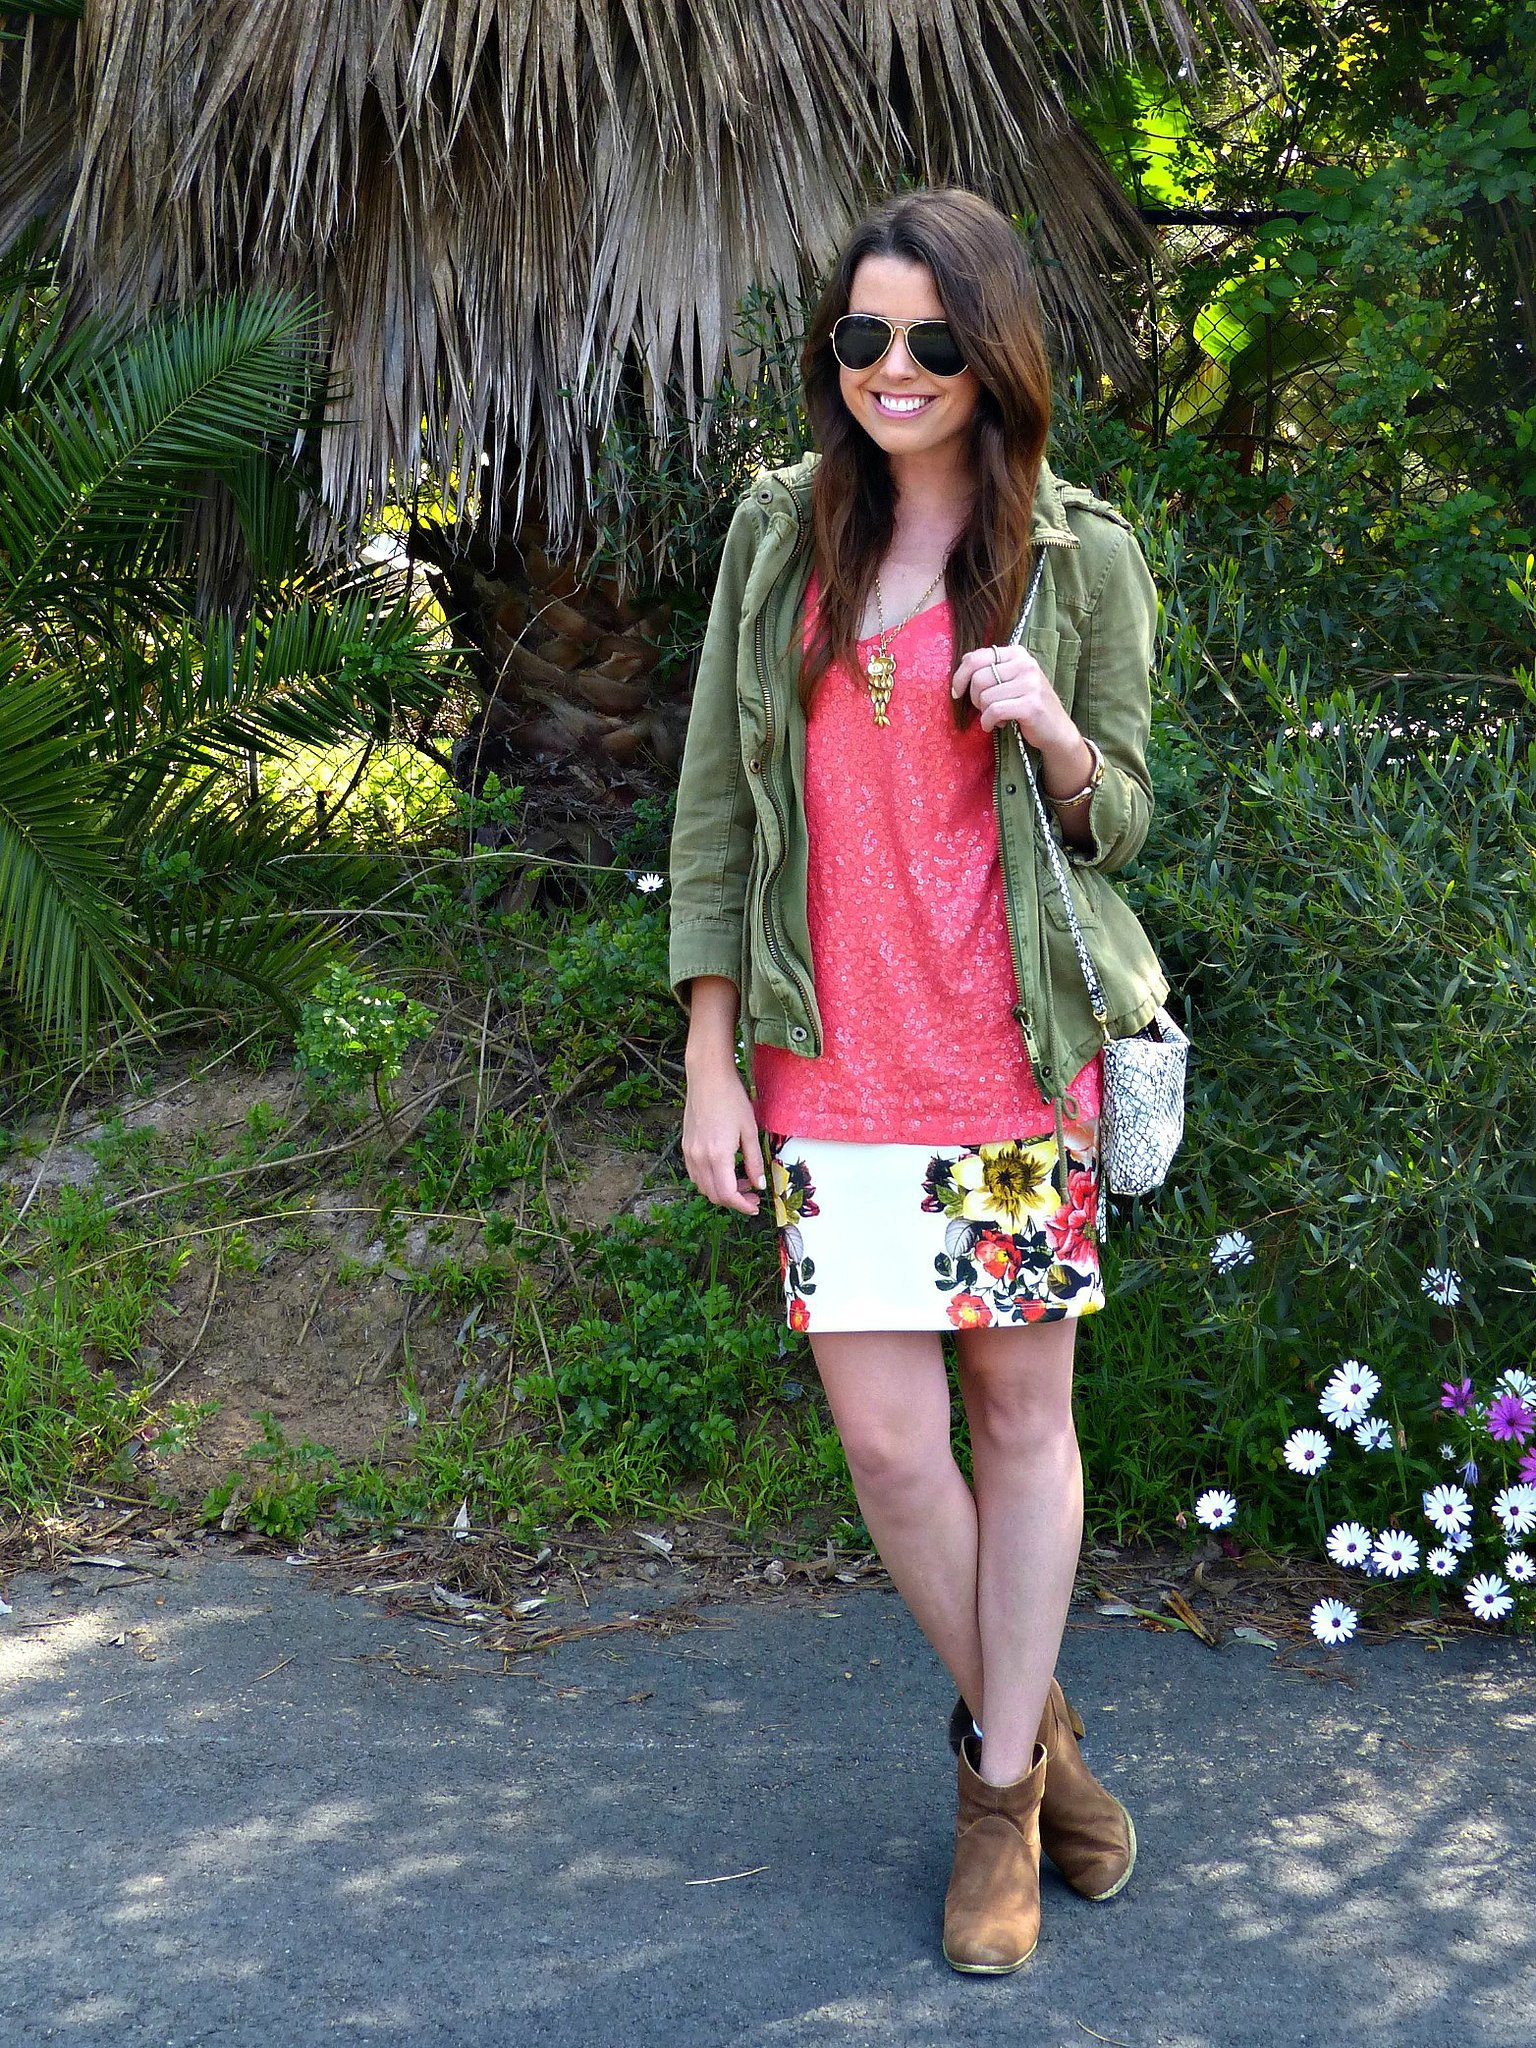 Congrats, abigailsterling! We'd pack this exact outfit for our Spring break!